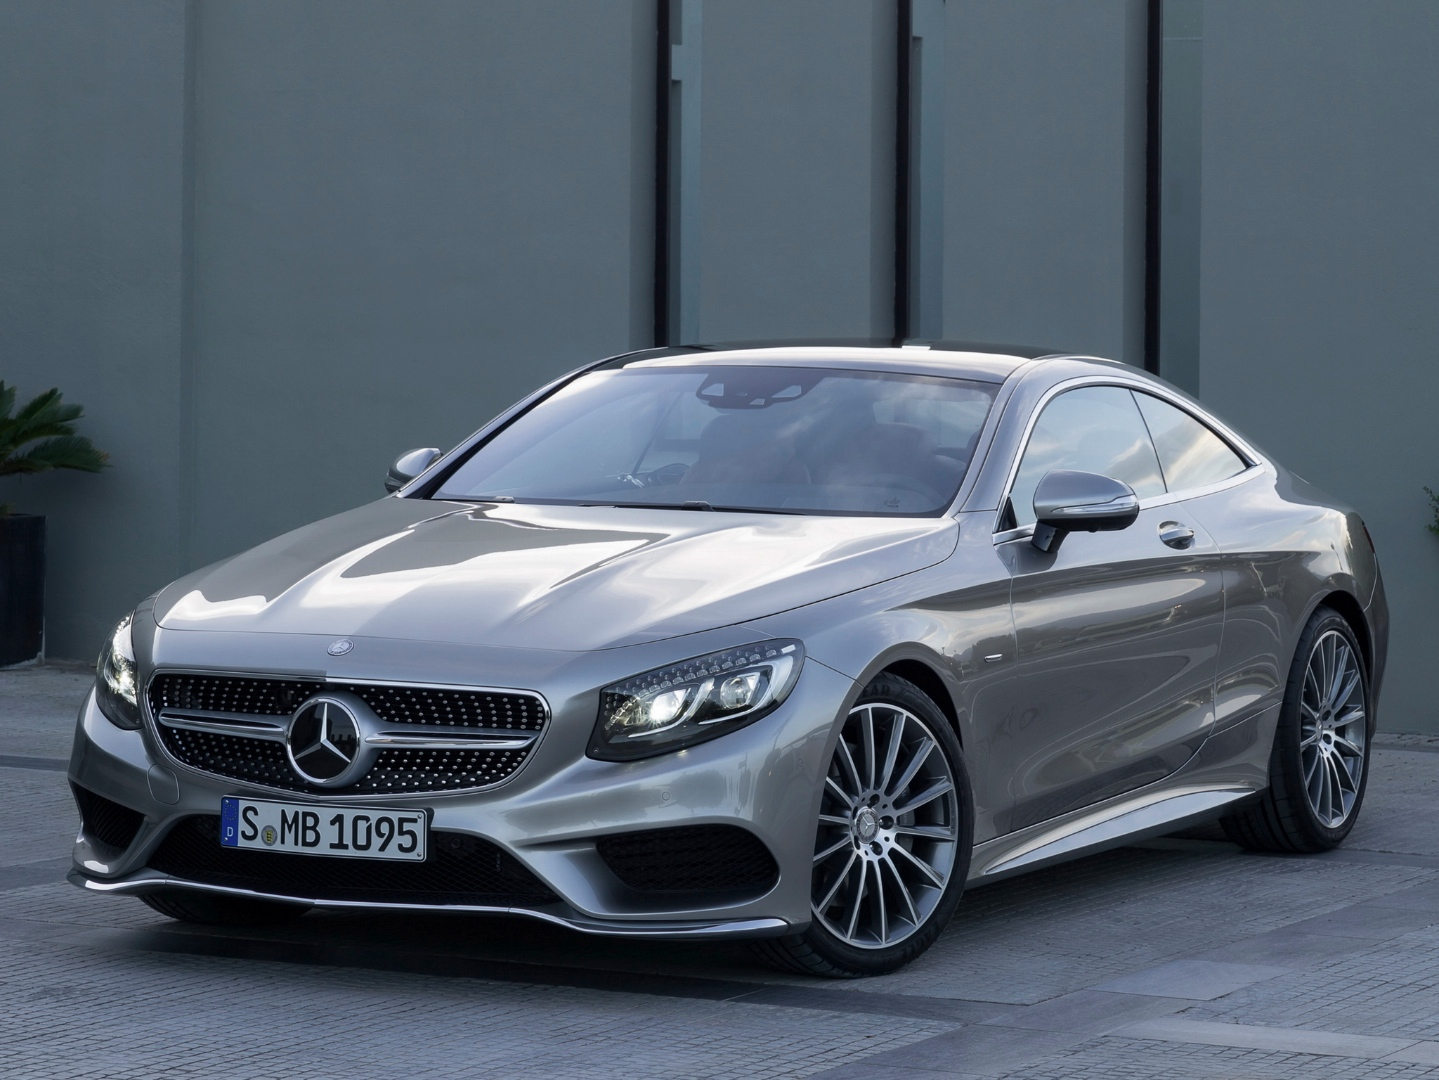 Mercedes benz s class coupe c217 finally starts for Mercedes benz s class coupe price